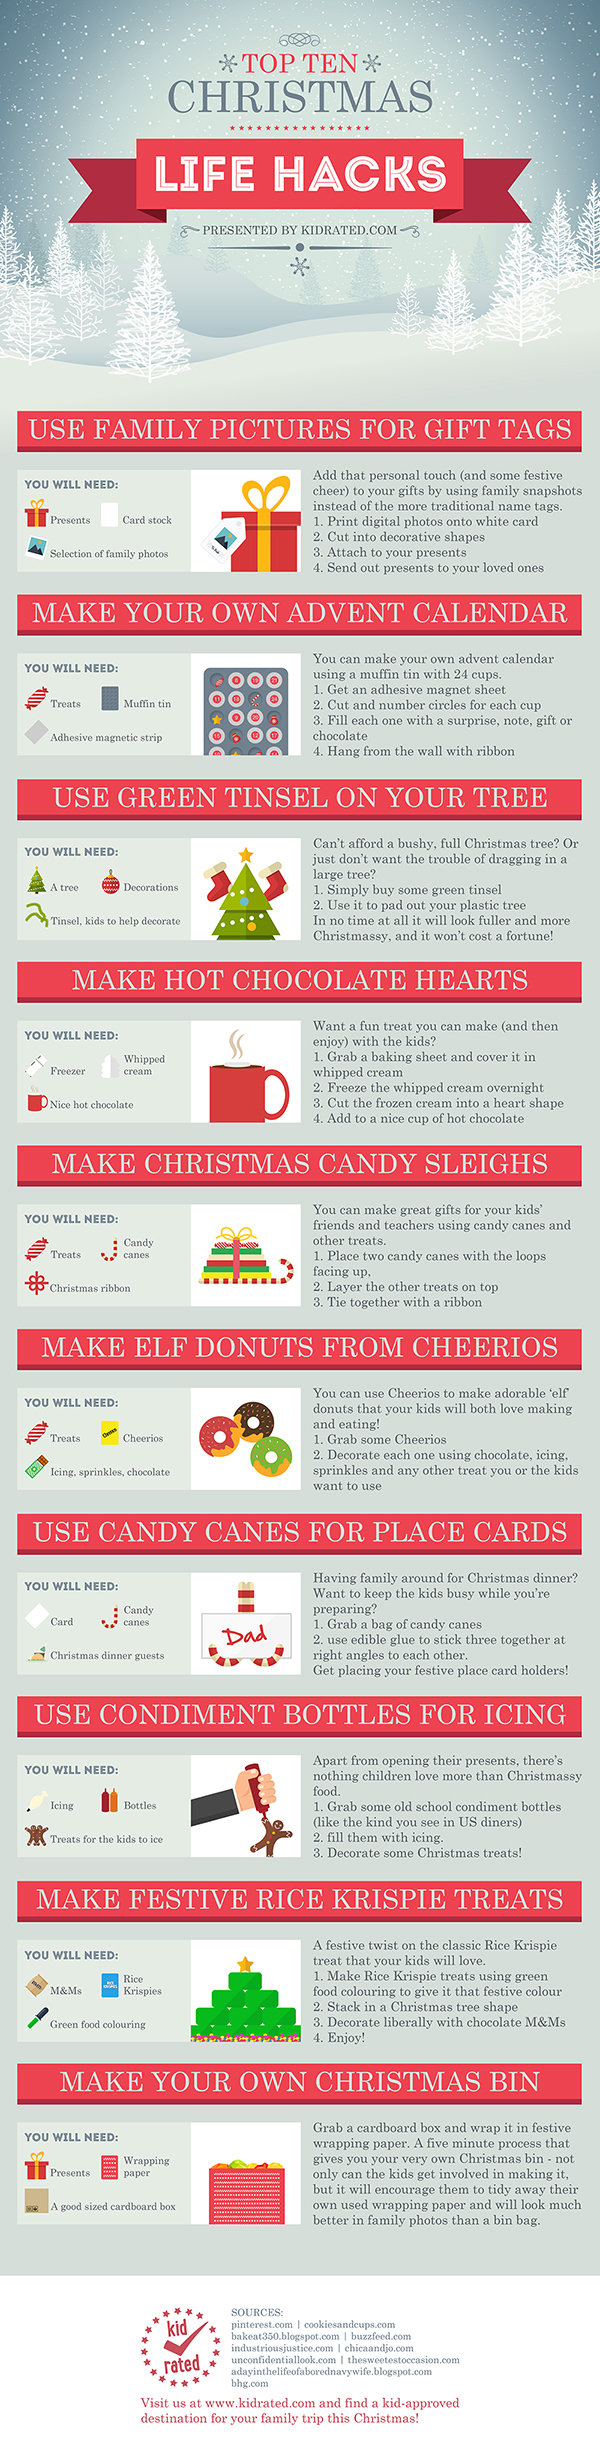 Top-Ten-Christmas-Life-Hacks-Infographic